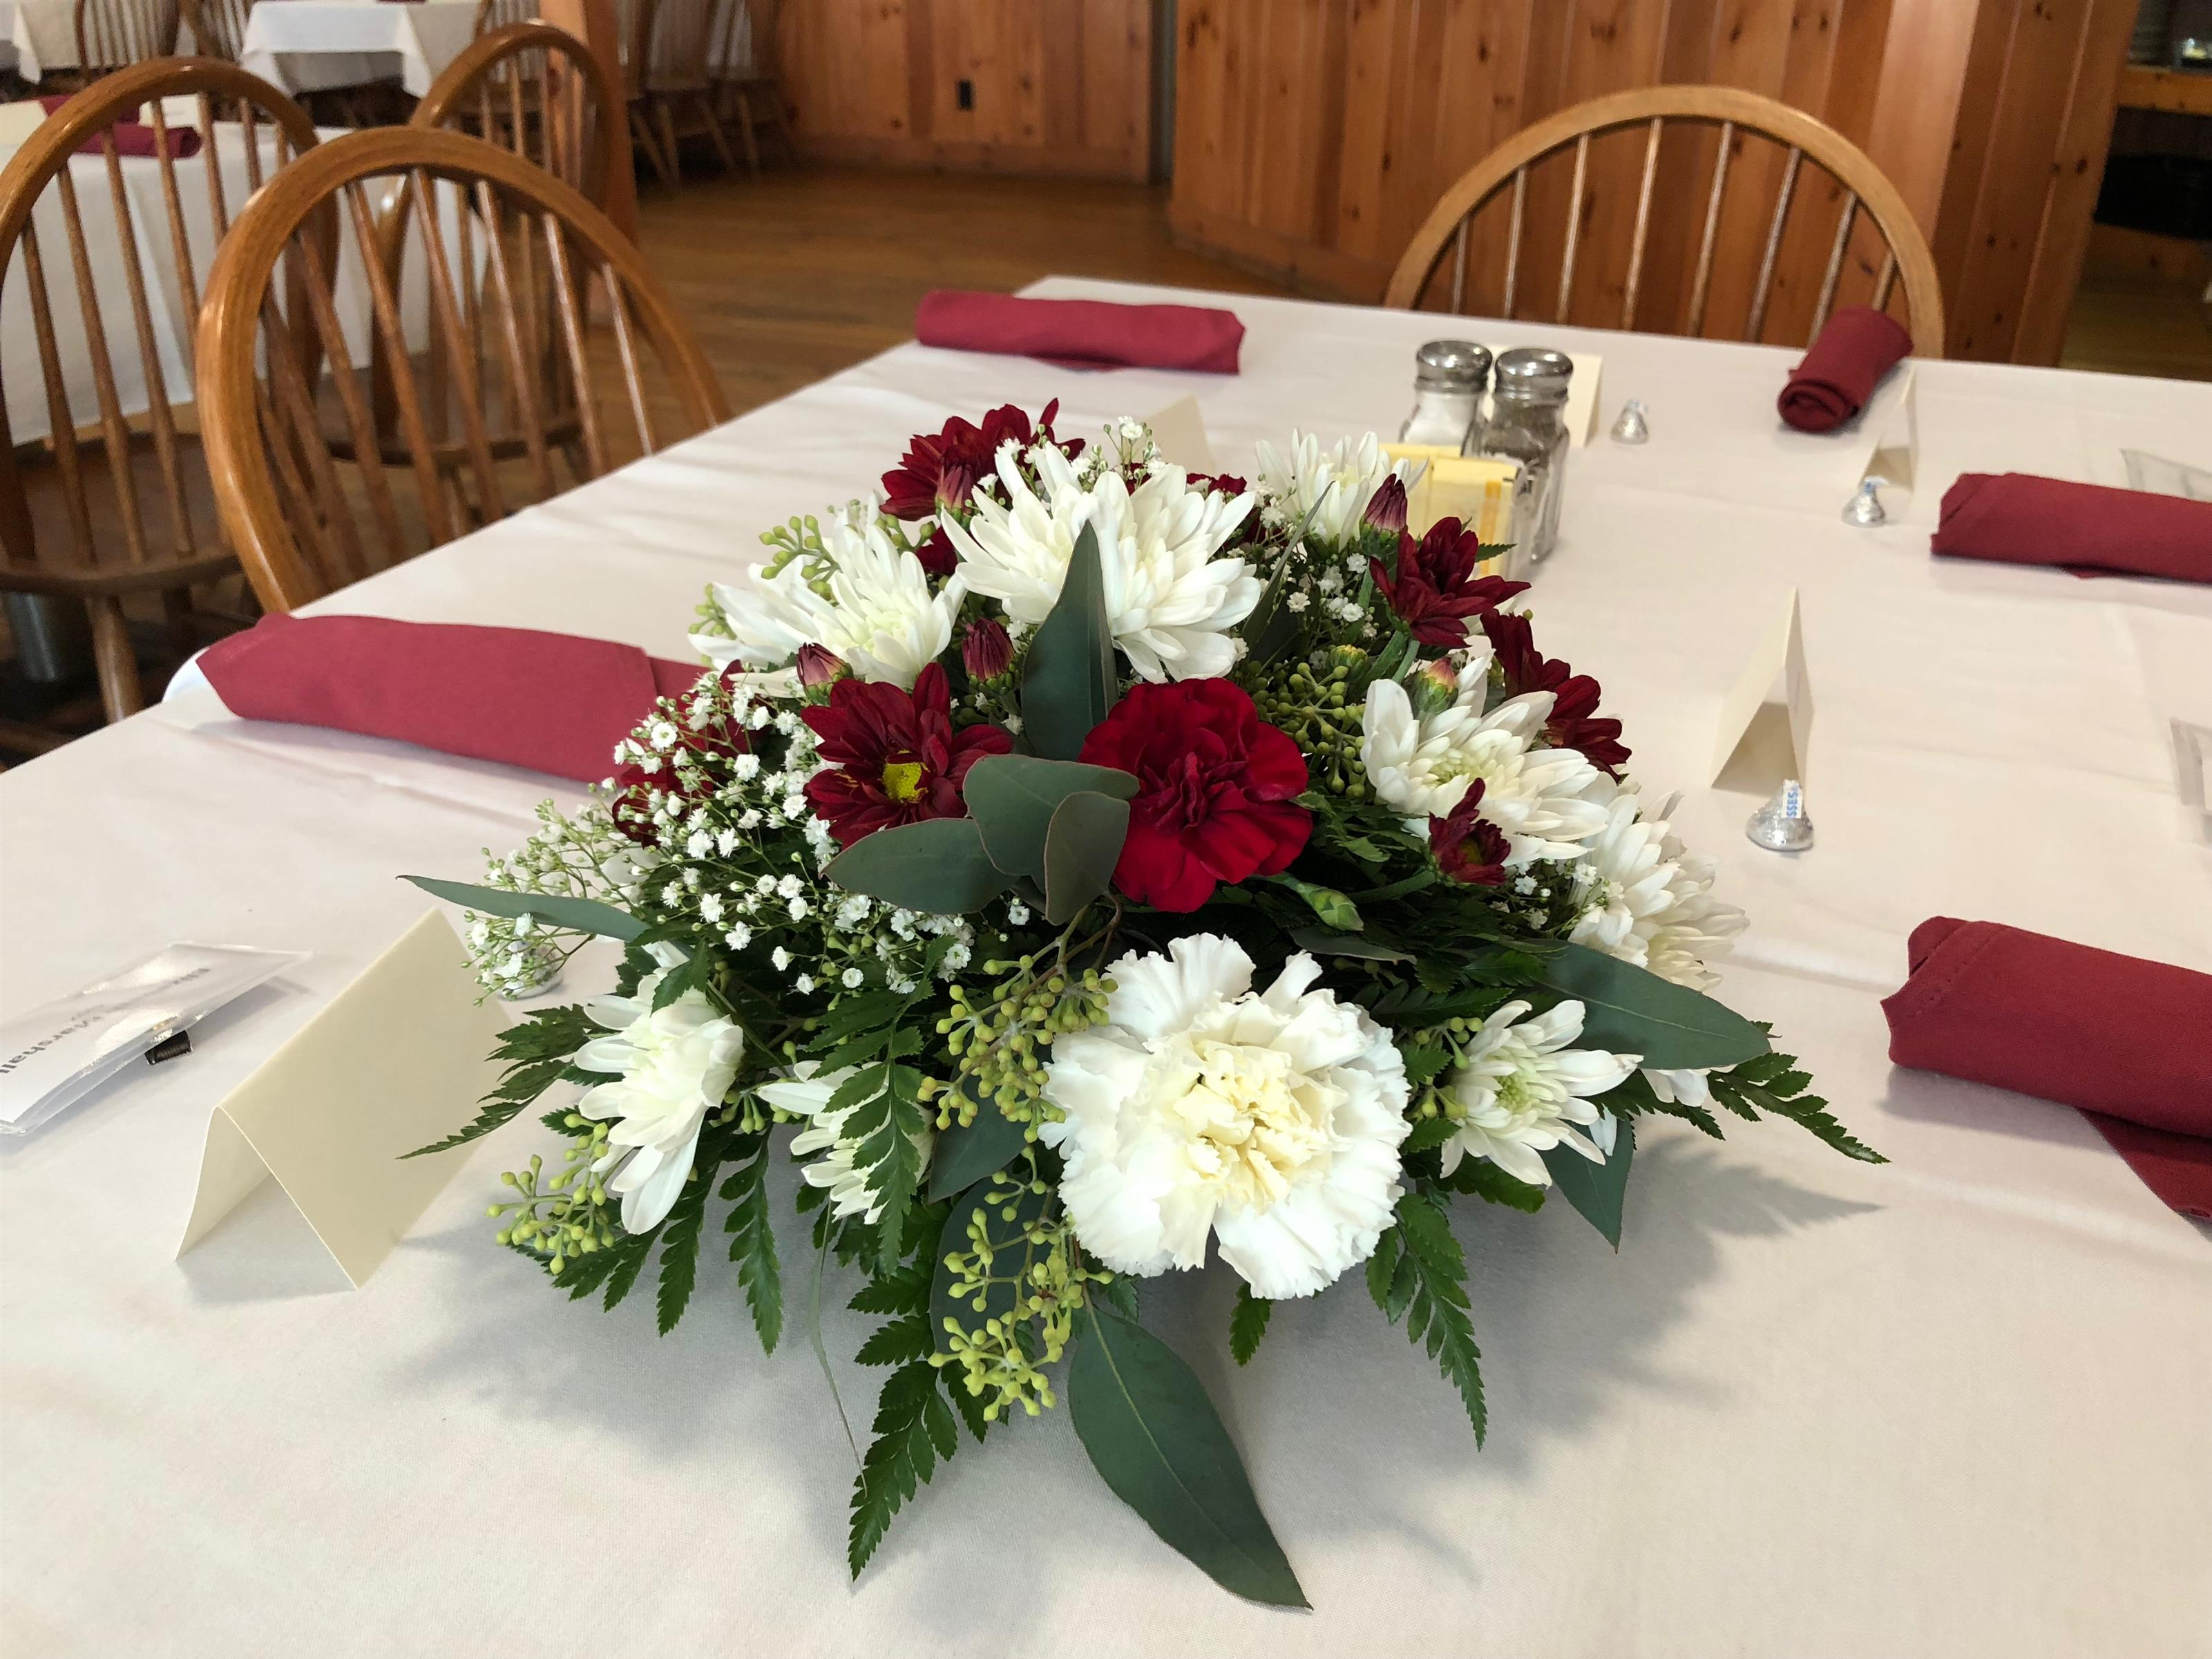 A flower centerpiece on a table set